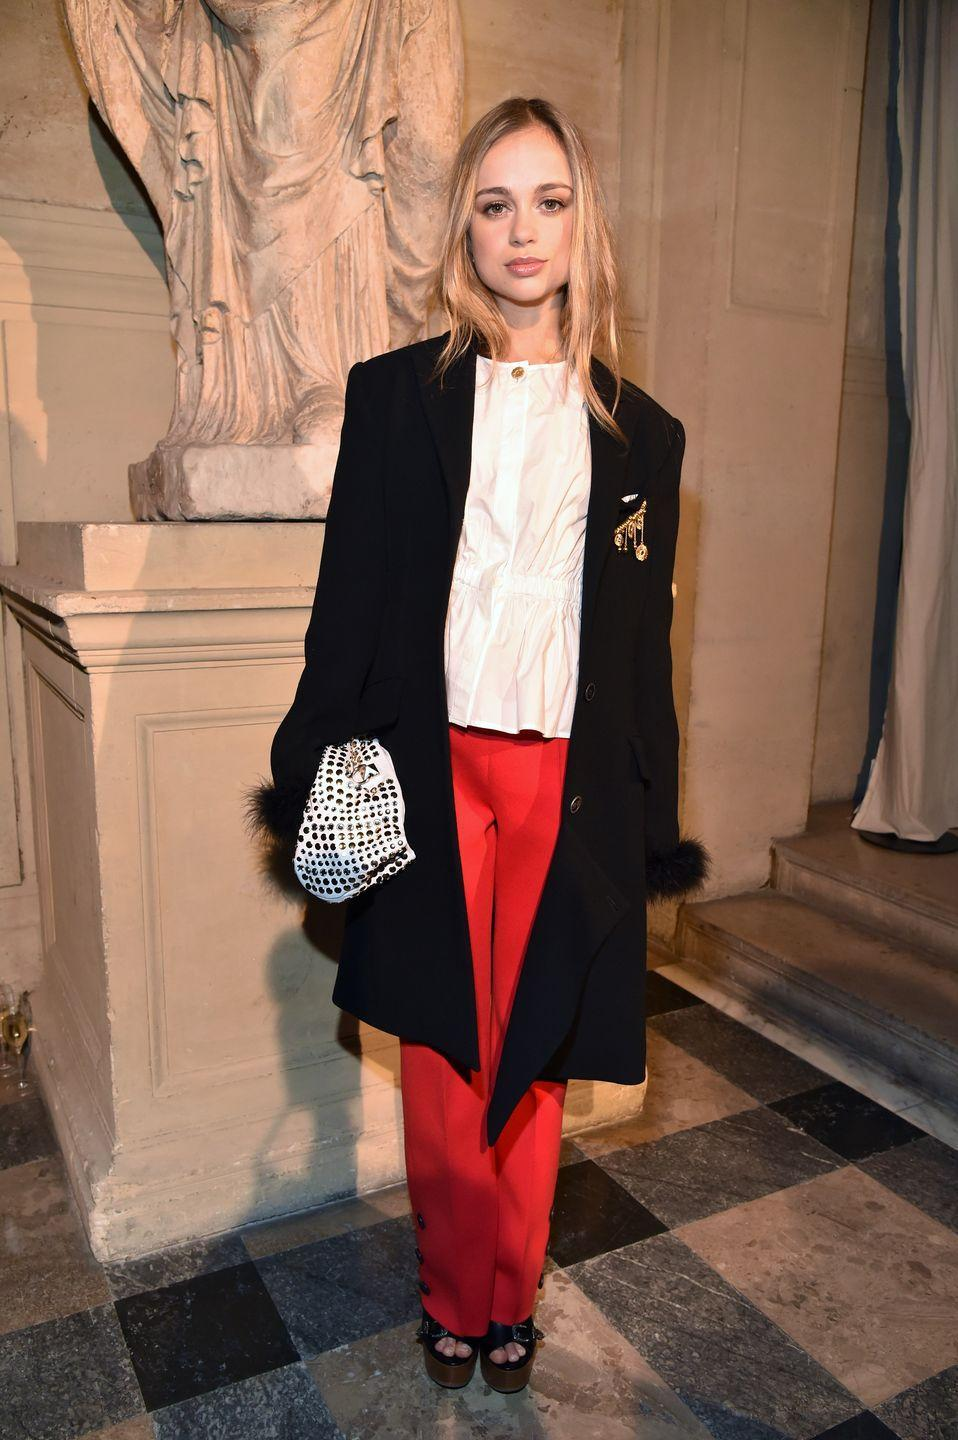 "<p>In 2016, Lady Amelia became <em><a href=""http://www.tatler.com/gallery/introducing-amelia-windsor"" rel=""nofollow noopener"" target=""_blank"" data-ylk=""slk:Tatler"" class=""link rapid-noclick-resp"">Tatler</a></em> magazine's first royal cover girl since Princess Eugenie was featured eight years prior. The granddaughter of Queen Elizabeth II's cousin, Prince Edward, Duke of Kent, Amelia is currently 36th in line to the British throne. Her <a href=""https://www.instagram.com/amelwindsor/?hl=en"" rel=""nofollow noopener"" target=""_blank"" data-ylk=""slk:Instagram"" class=""link rapid-noclick-resp"">Instagram</a> account looks exactly what you'd expect any 22-year-old royal's Instagram account to look like: her photos include trips to museum, New York City, selfies, and stunning views of Paris. If you dig deep enough, you'll run into Amelia's gram of her great uncle Charles, aka the ""best great-uncle ever.""</p>"